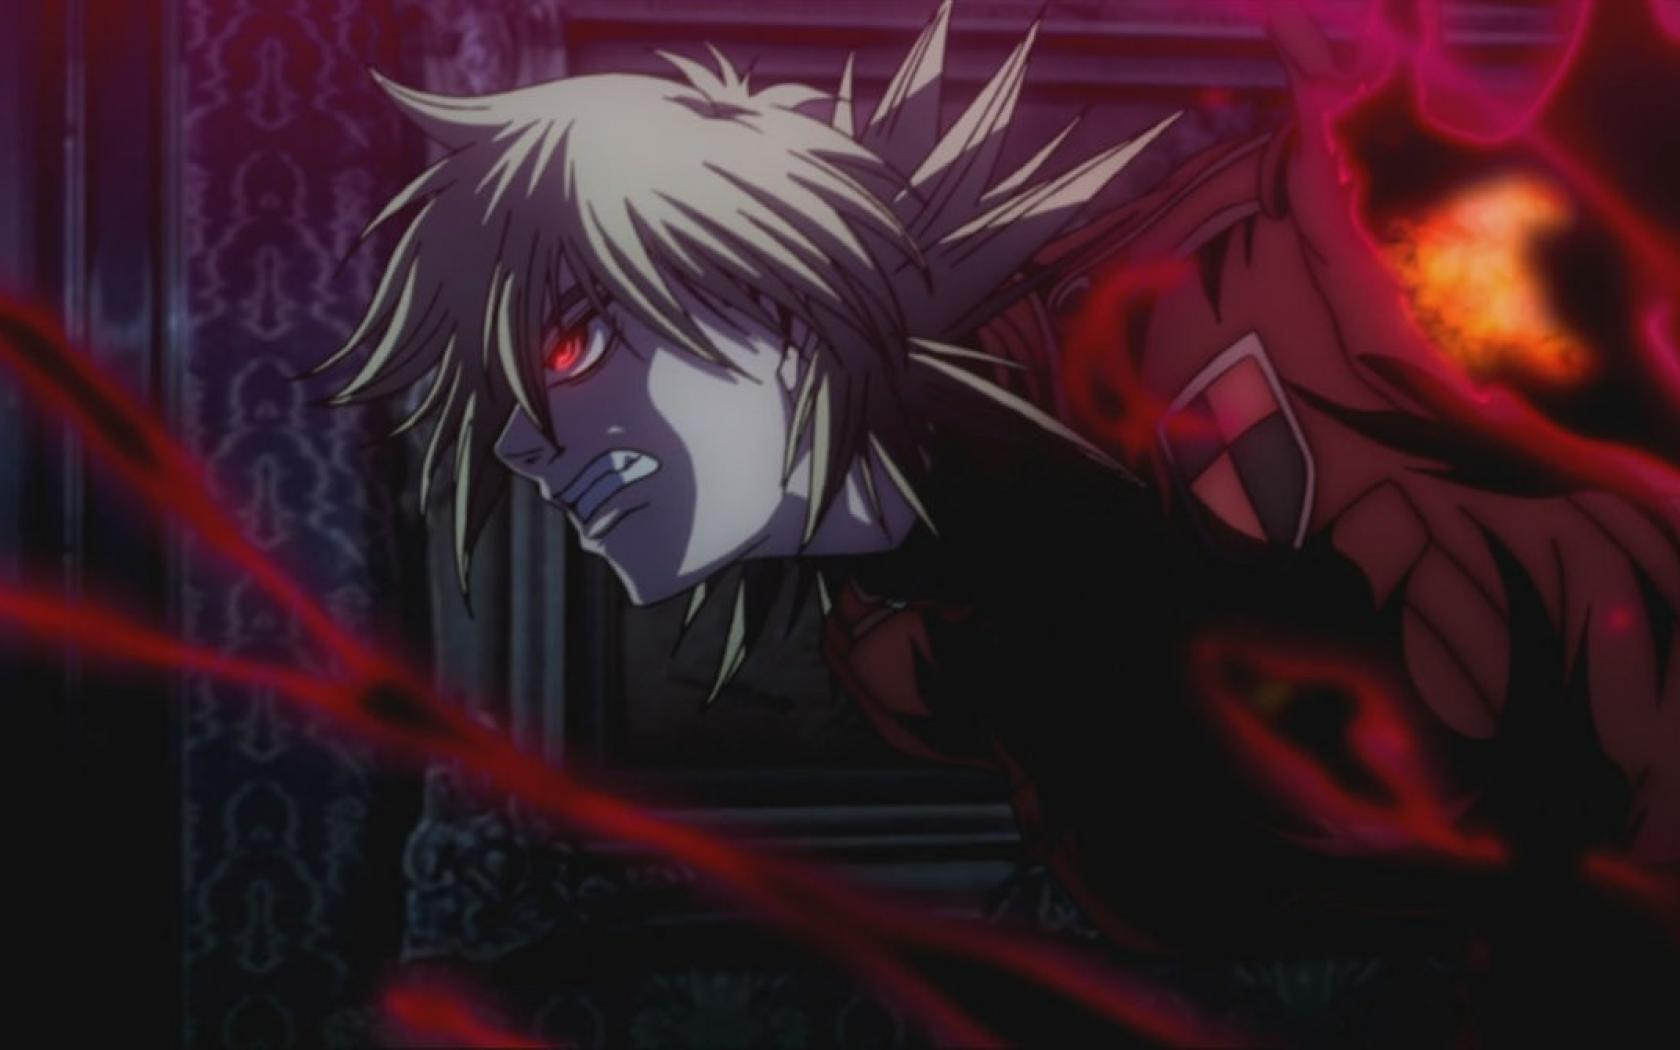 Hellsing Ultimate Seras Victoria Wallpaper - WallpaperSafari